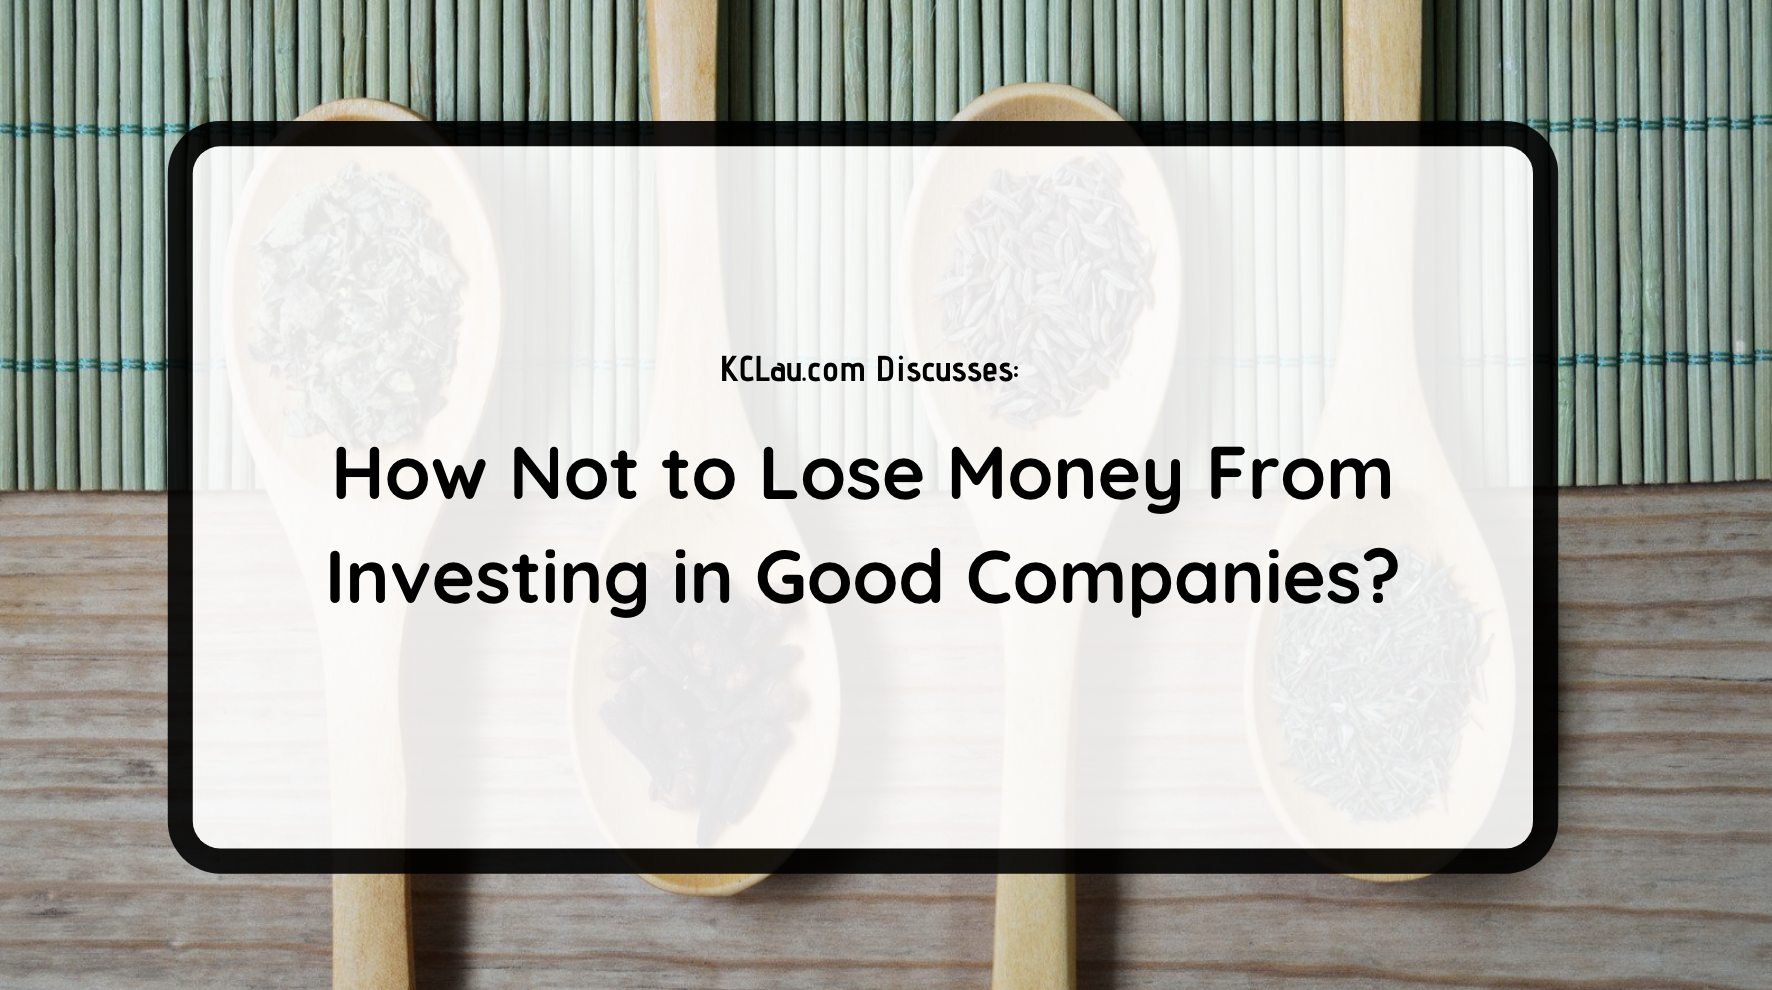 How Not to Lose Money From Investing in Good Companies?